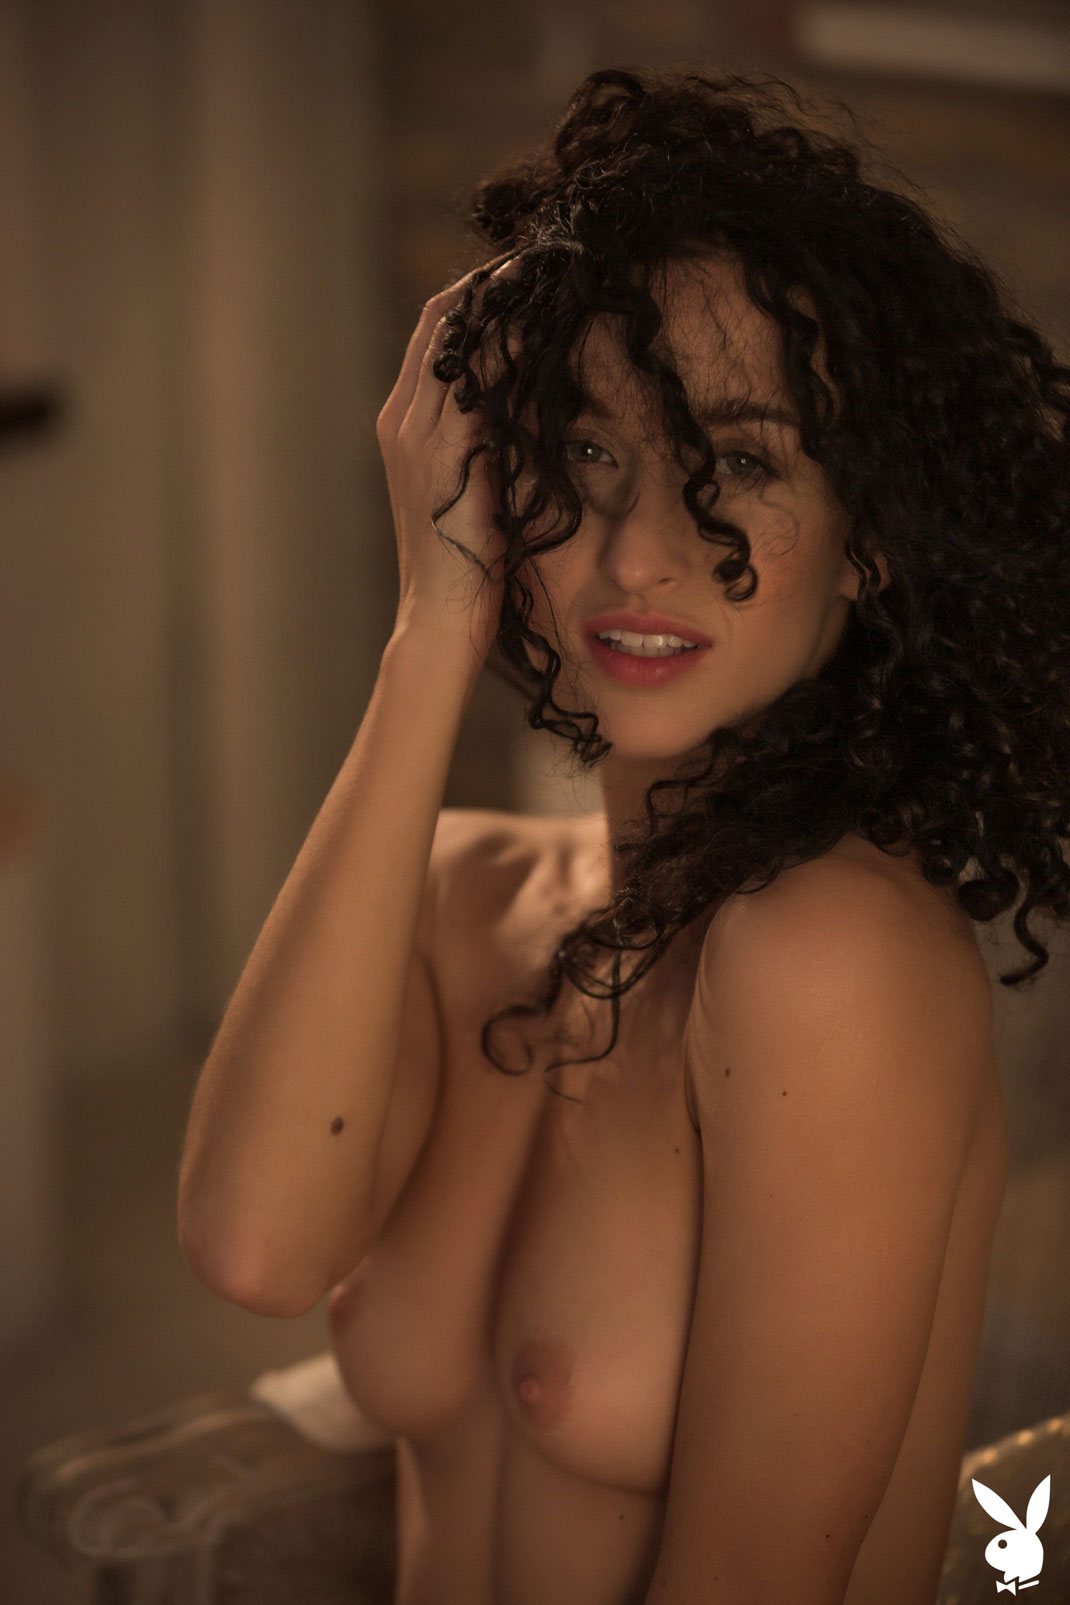 Lucy saunders nude